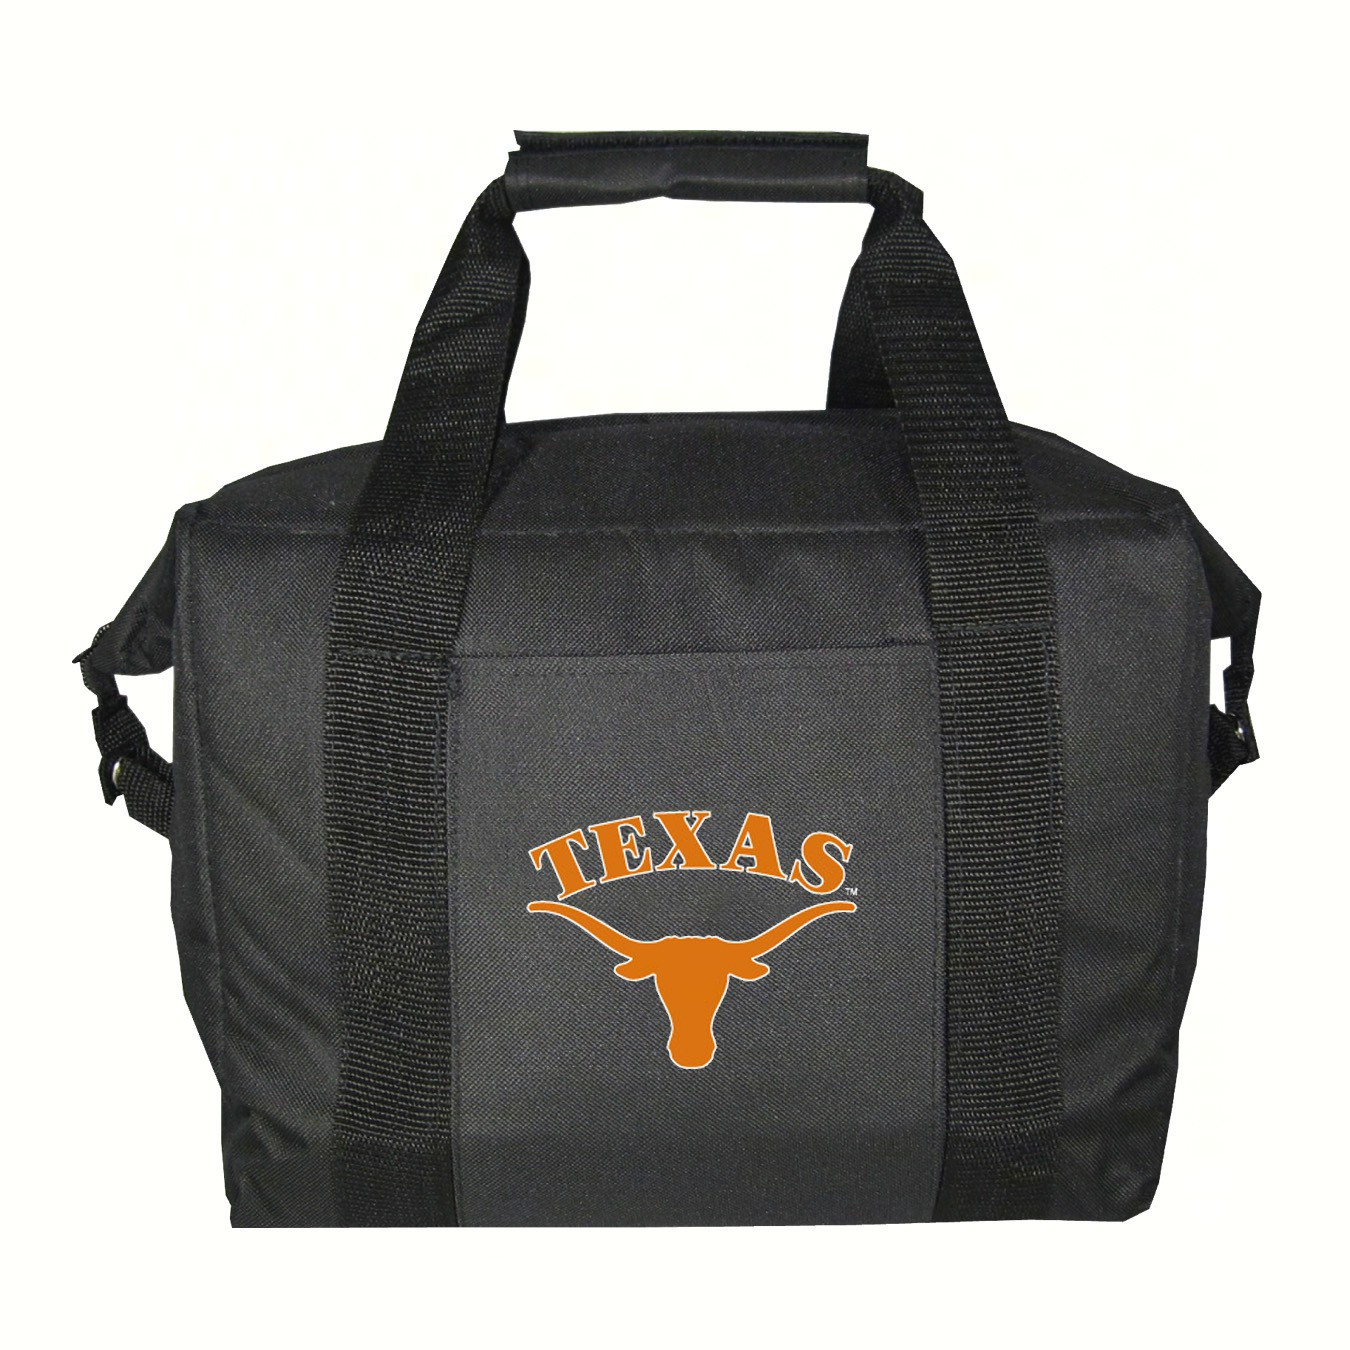 Kooler Bag - Texas Longhorns (Holds a 12 Pack)